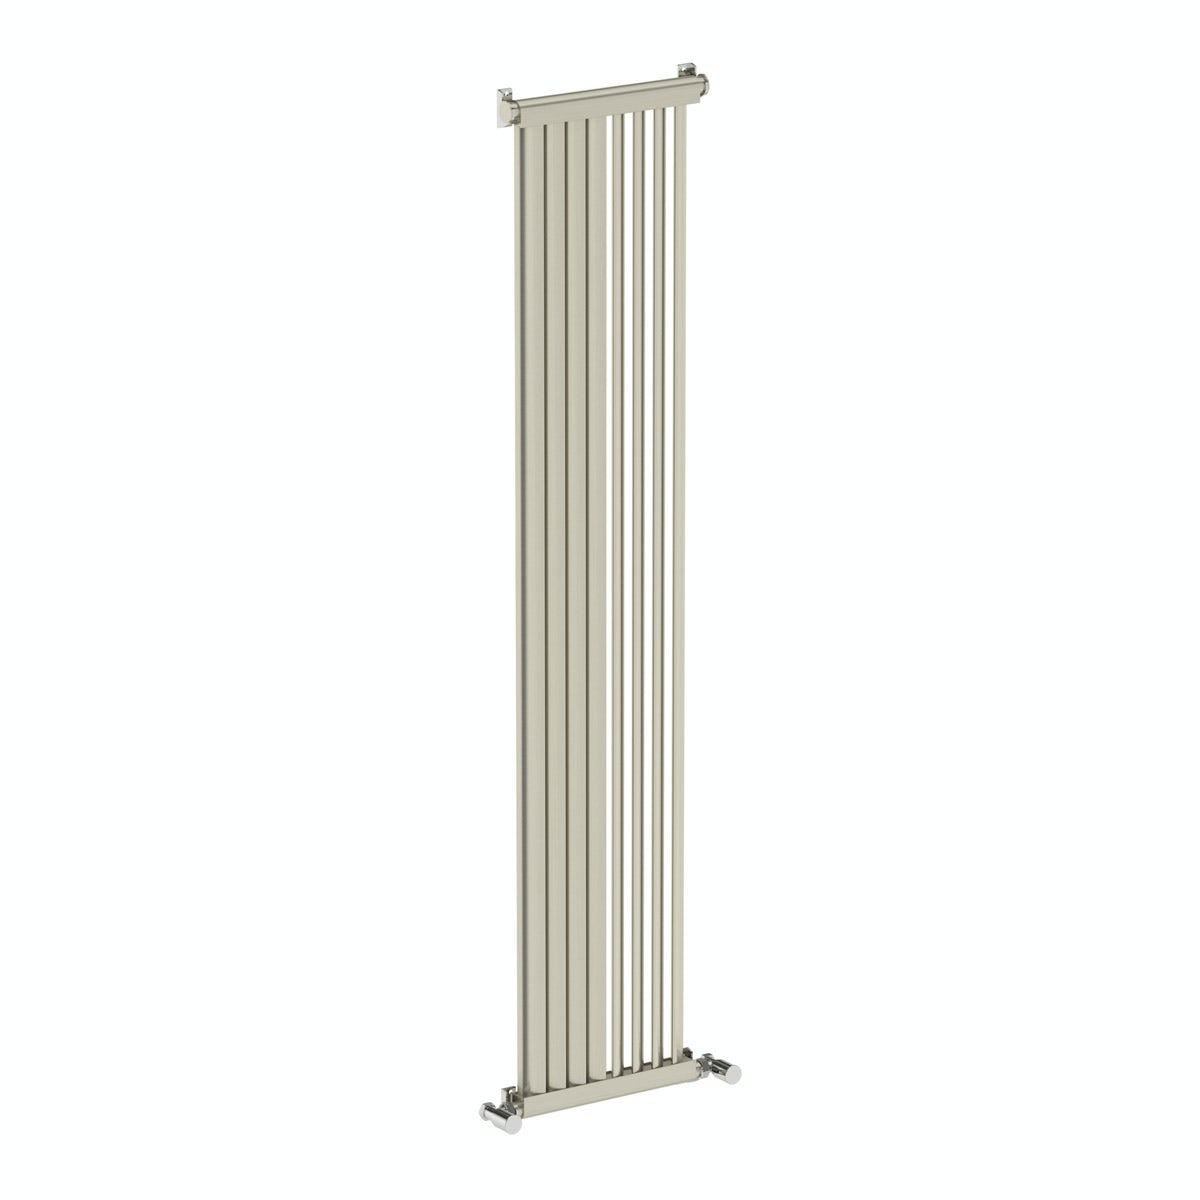 Mode Zephyra vertical radiator 1500 x 328